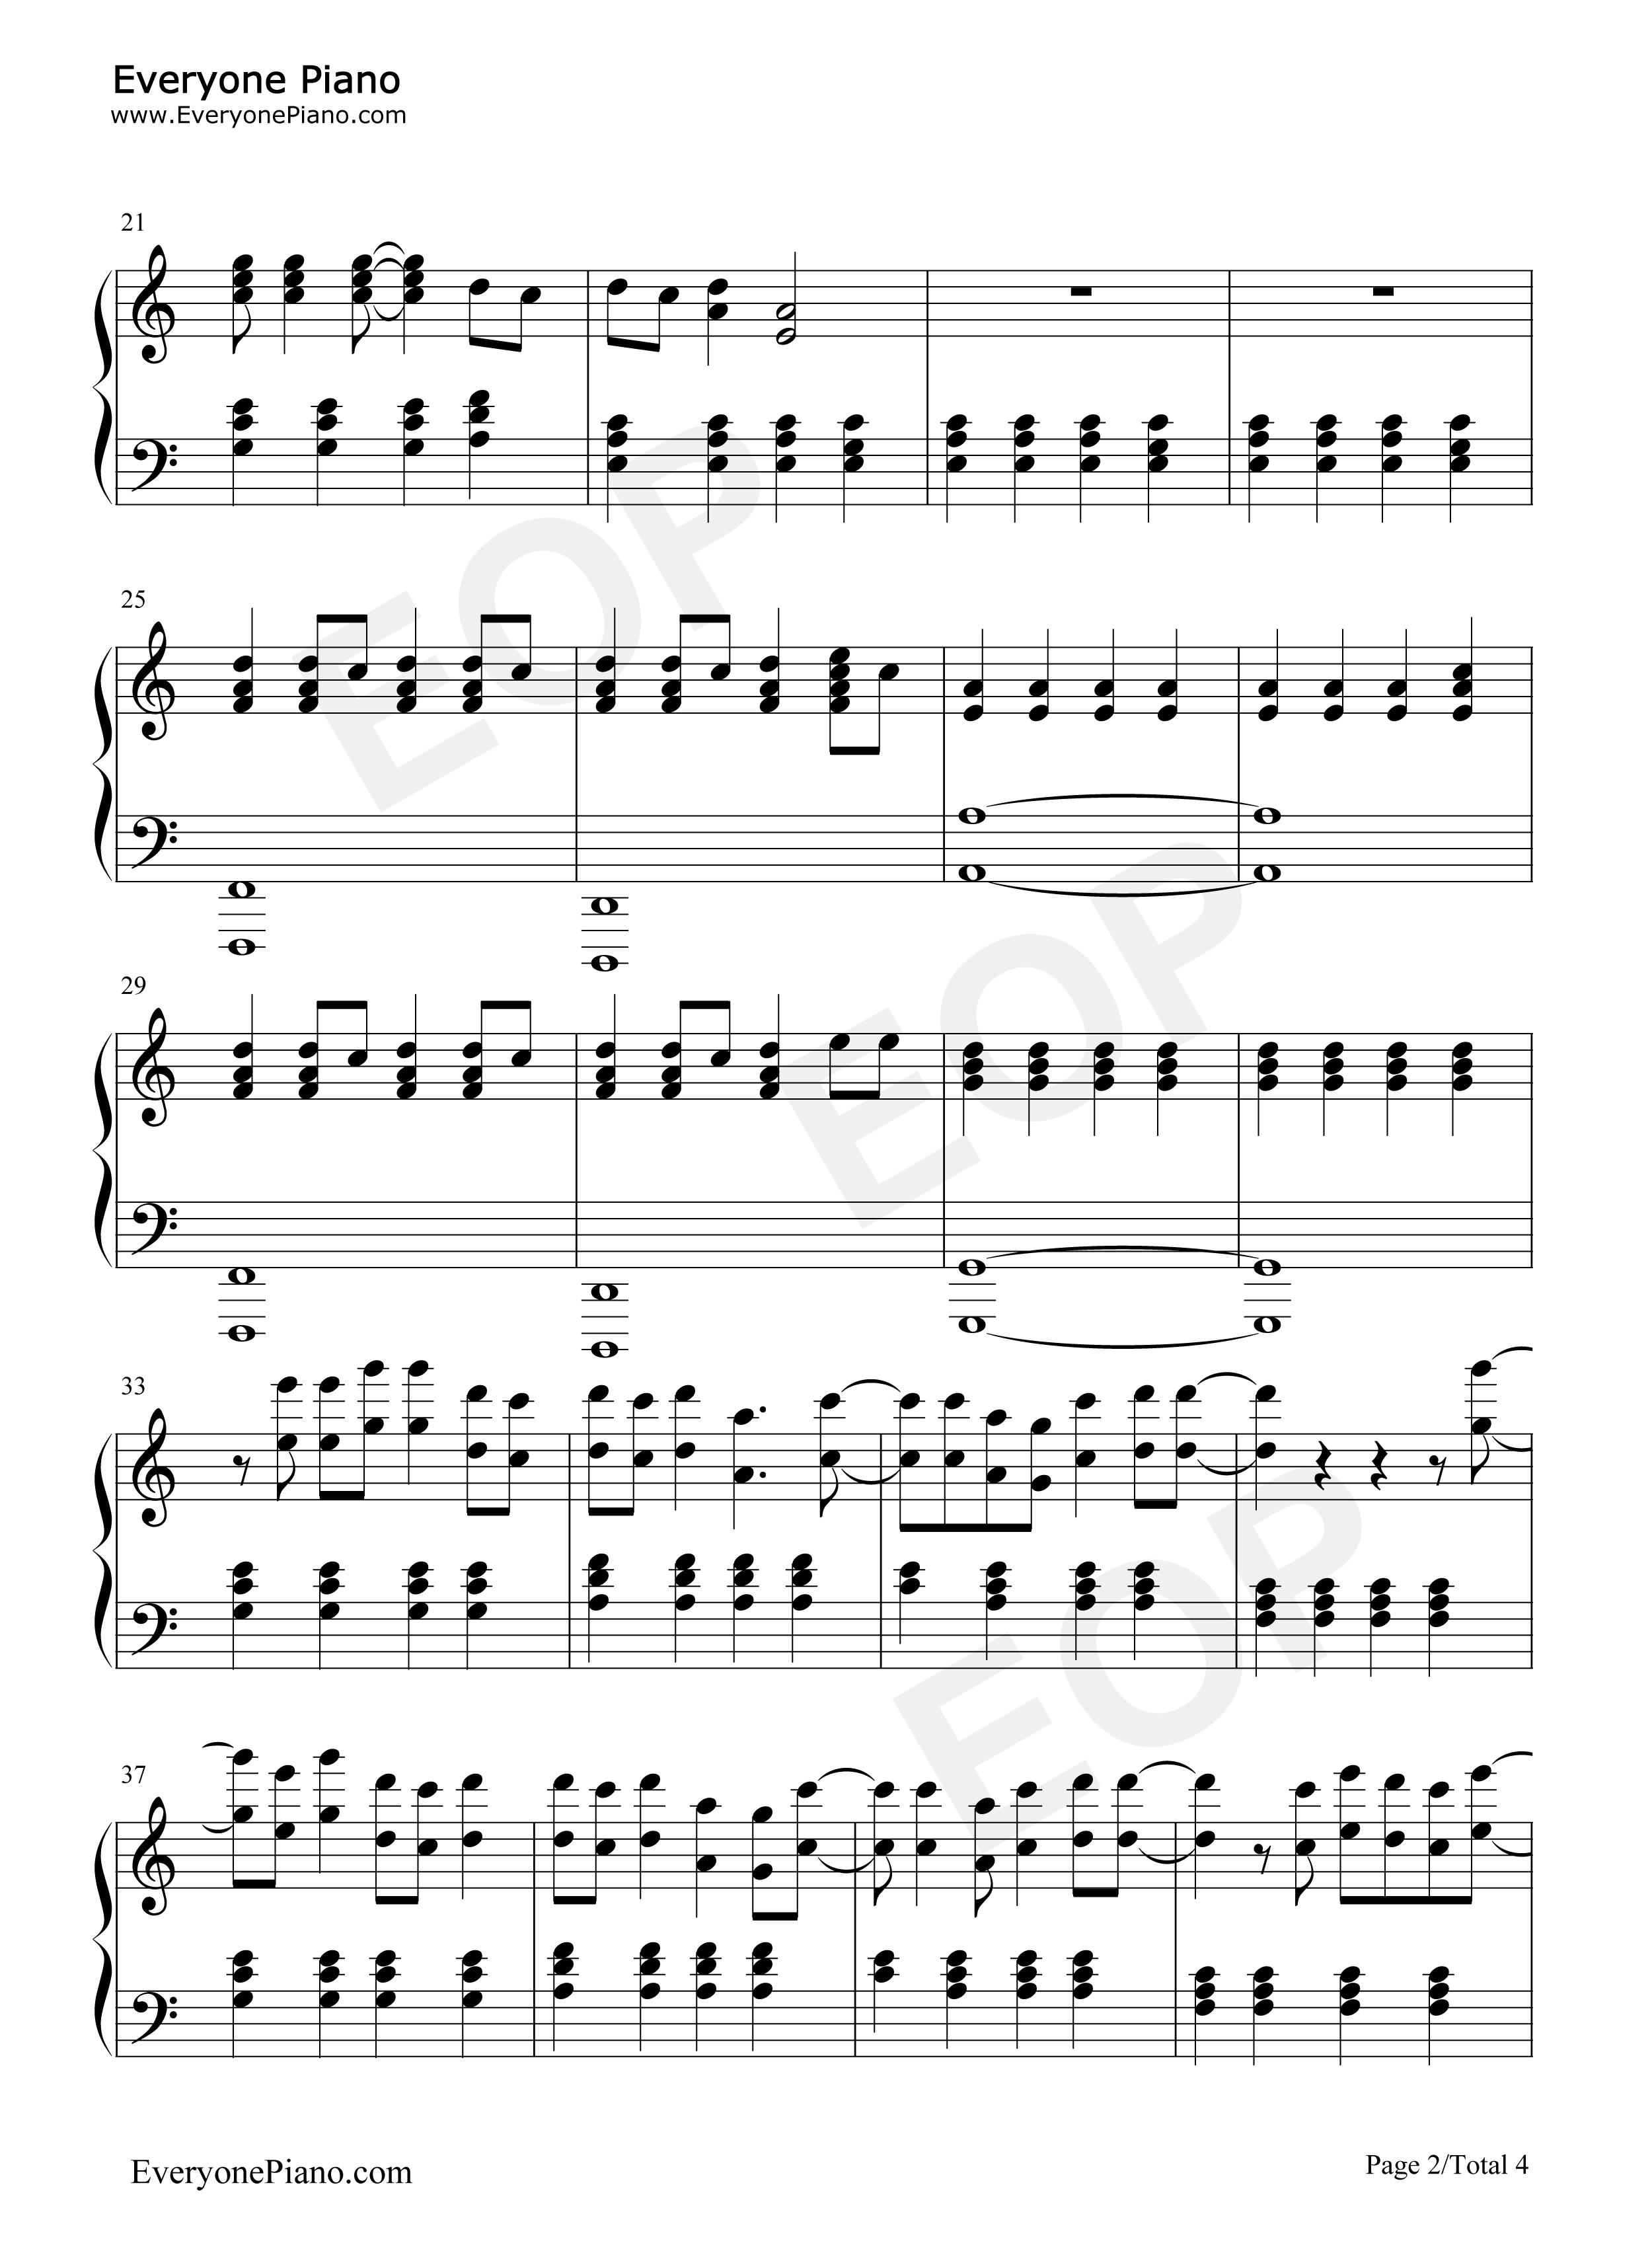 Stay-Rihanna ft. Mikky Ekko Stave Preview 2-Free Piano Sheet Music u0026 Piano Chords